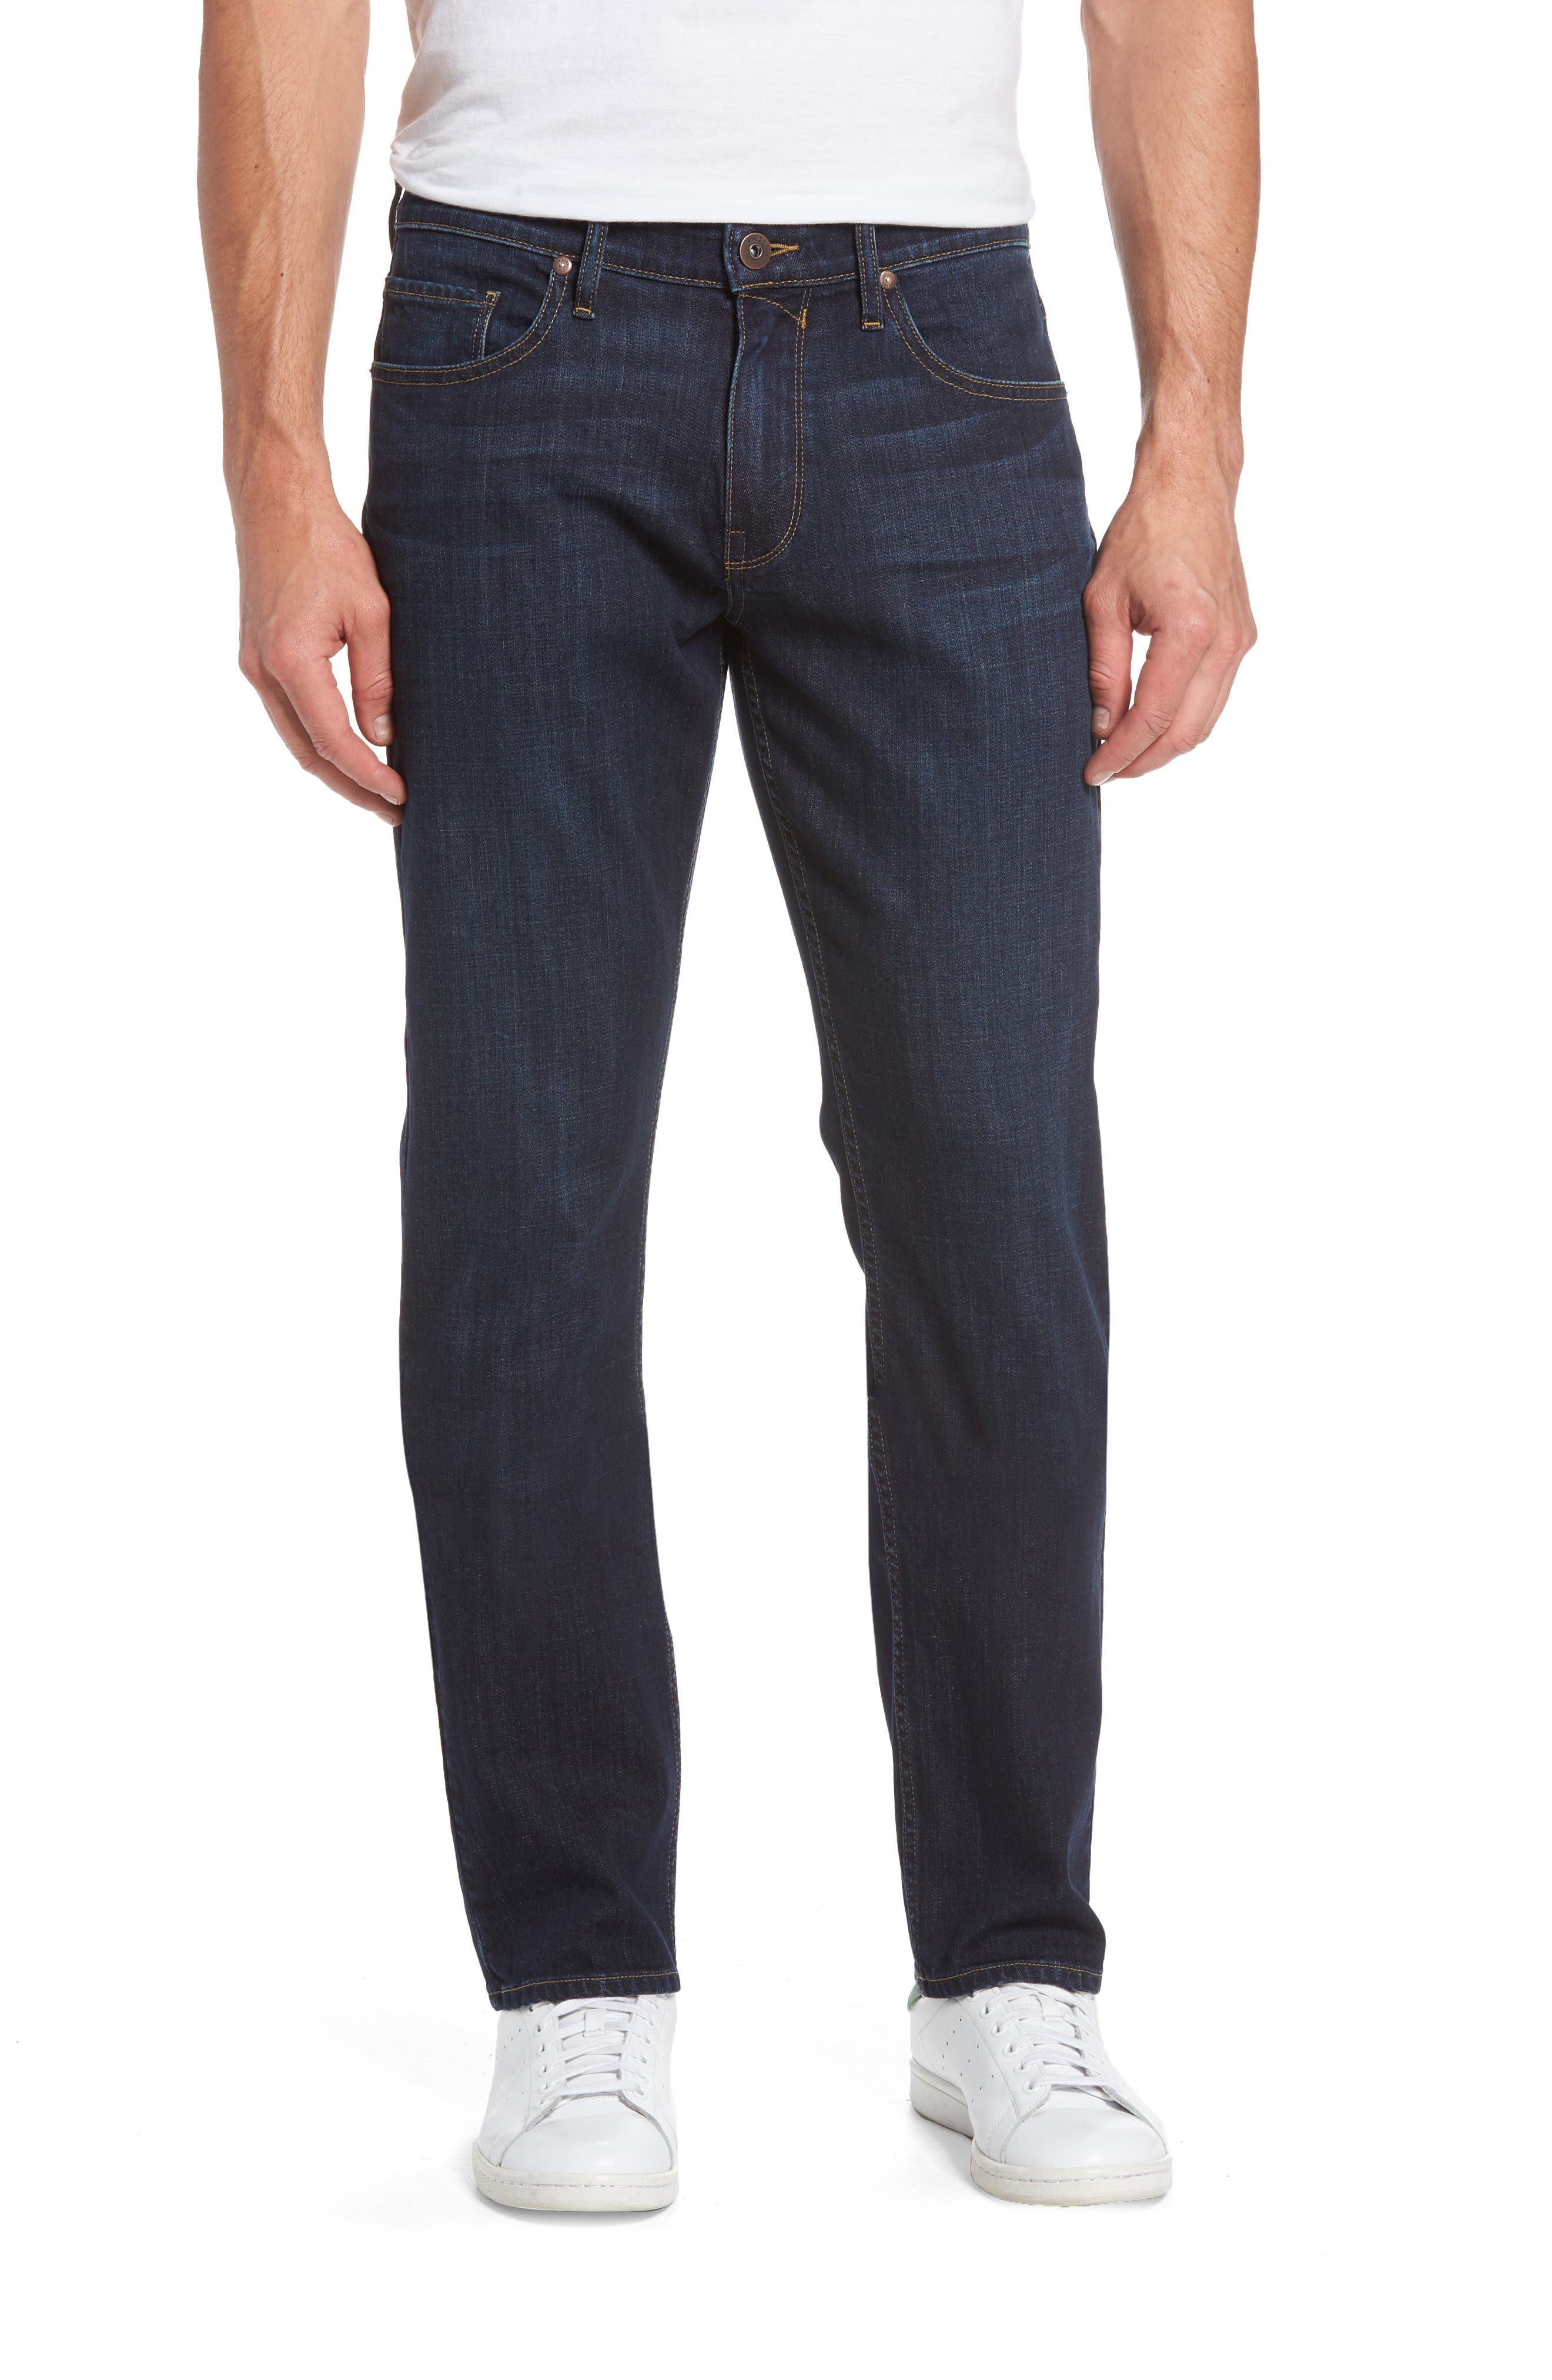 PAIGE Federal Slim Straight Fit Jeans (Ralston)